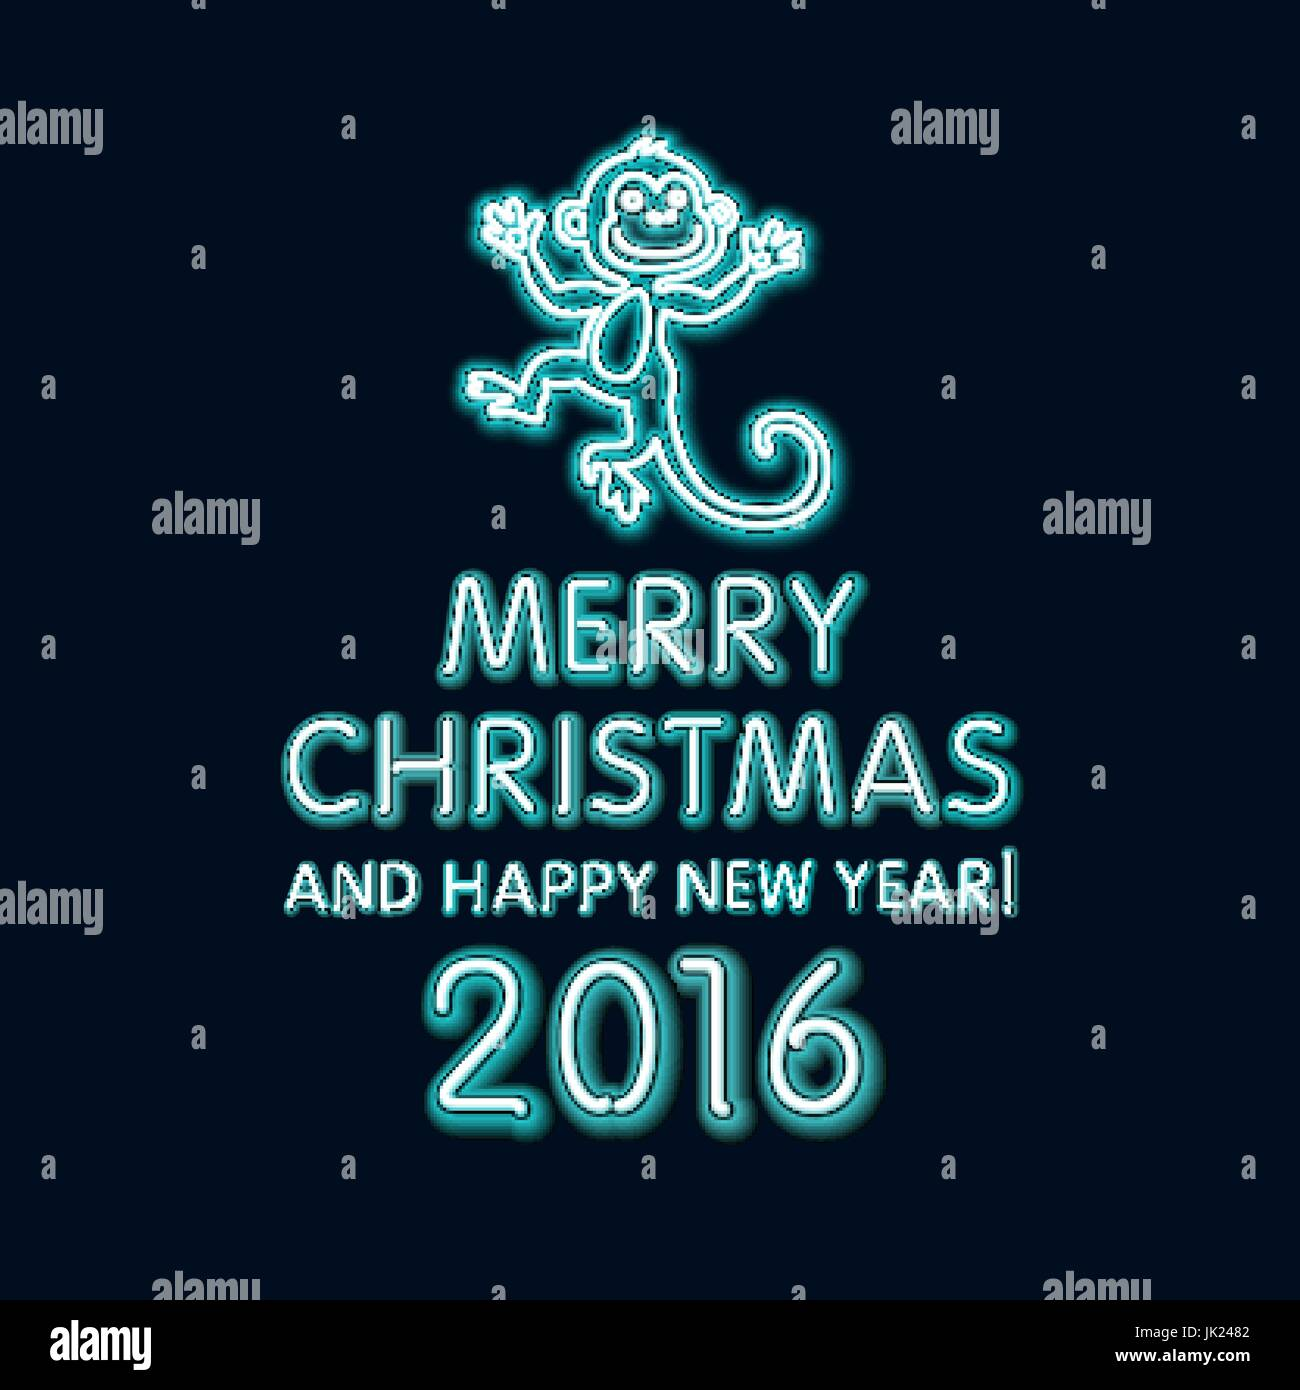 vector illustration of 2016 new year outline neon light background for design website banner holiday party element template christmas tree toy mon